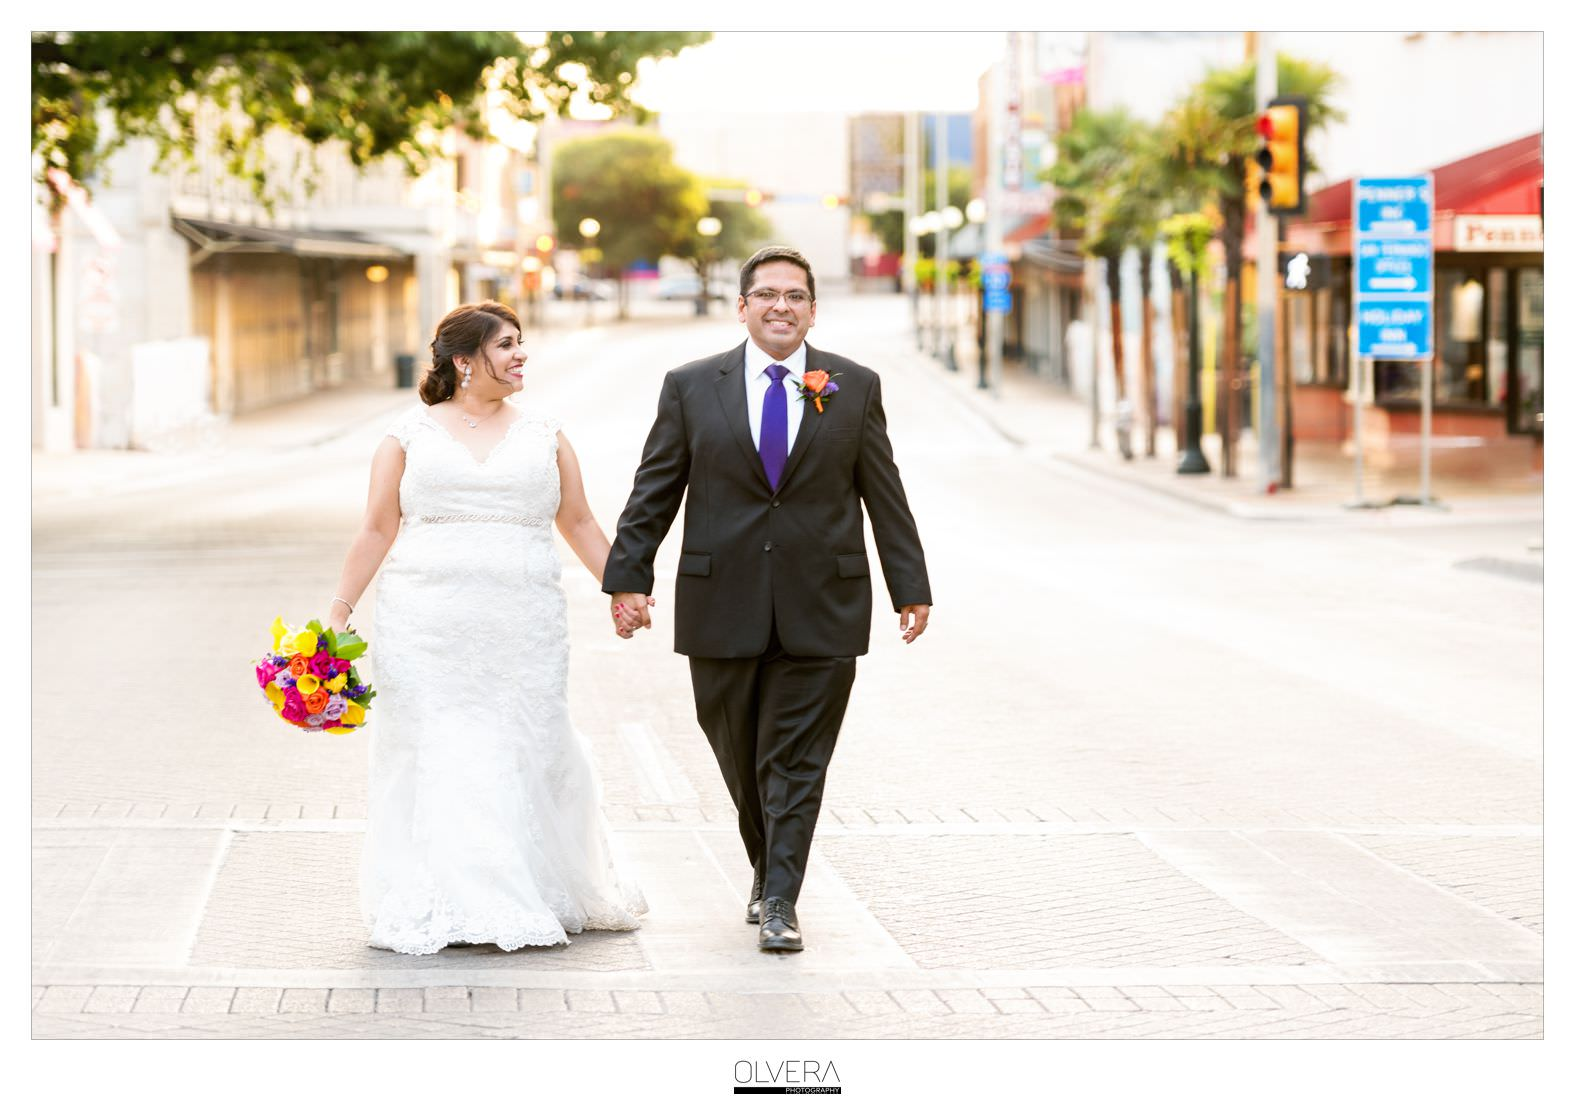 Bride and Groom walking in street|Downtown San Antonio|Olvera Photography